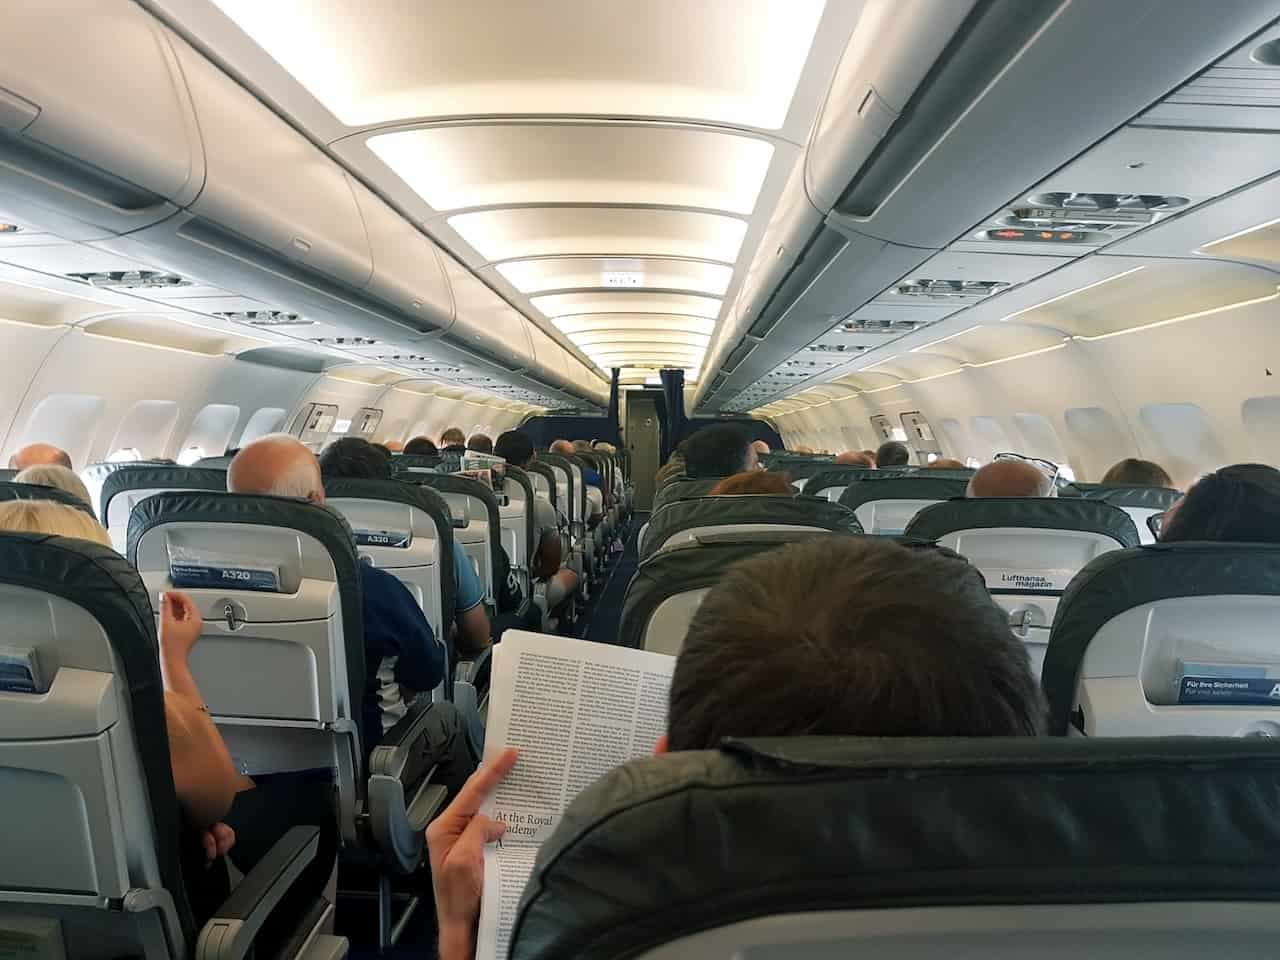 Inside the Airplane Cabin